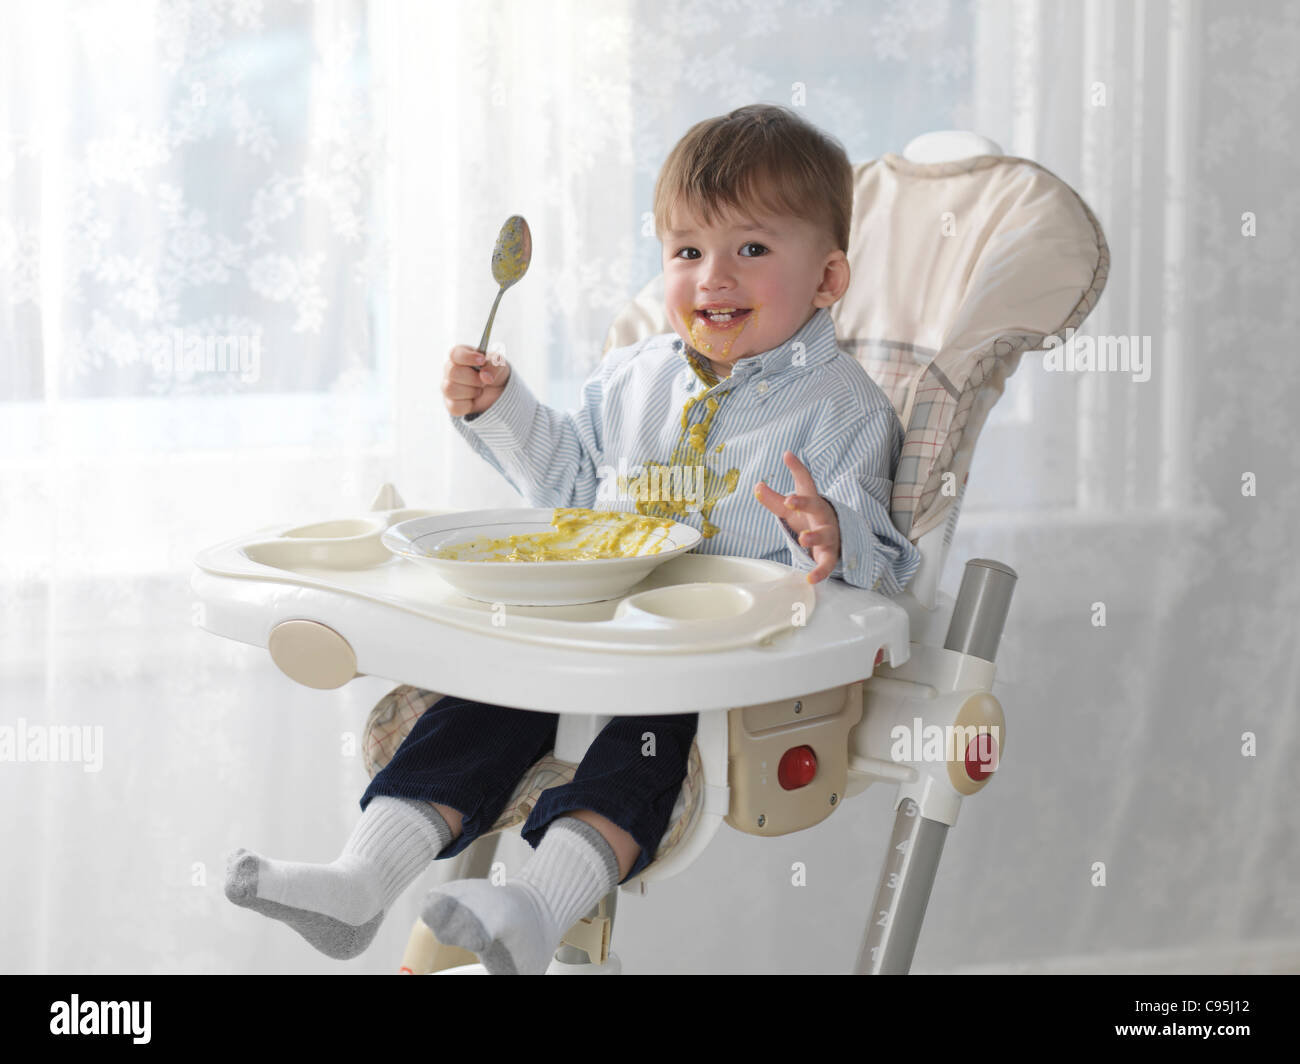 One and a half year old happy boy sitting in a high chair and eating soup with a spoon, spilling it on his shirt - Stock Image